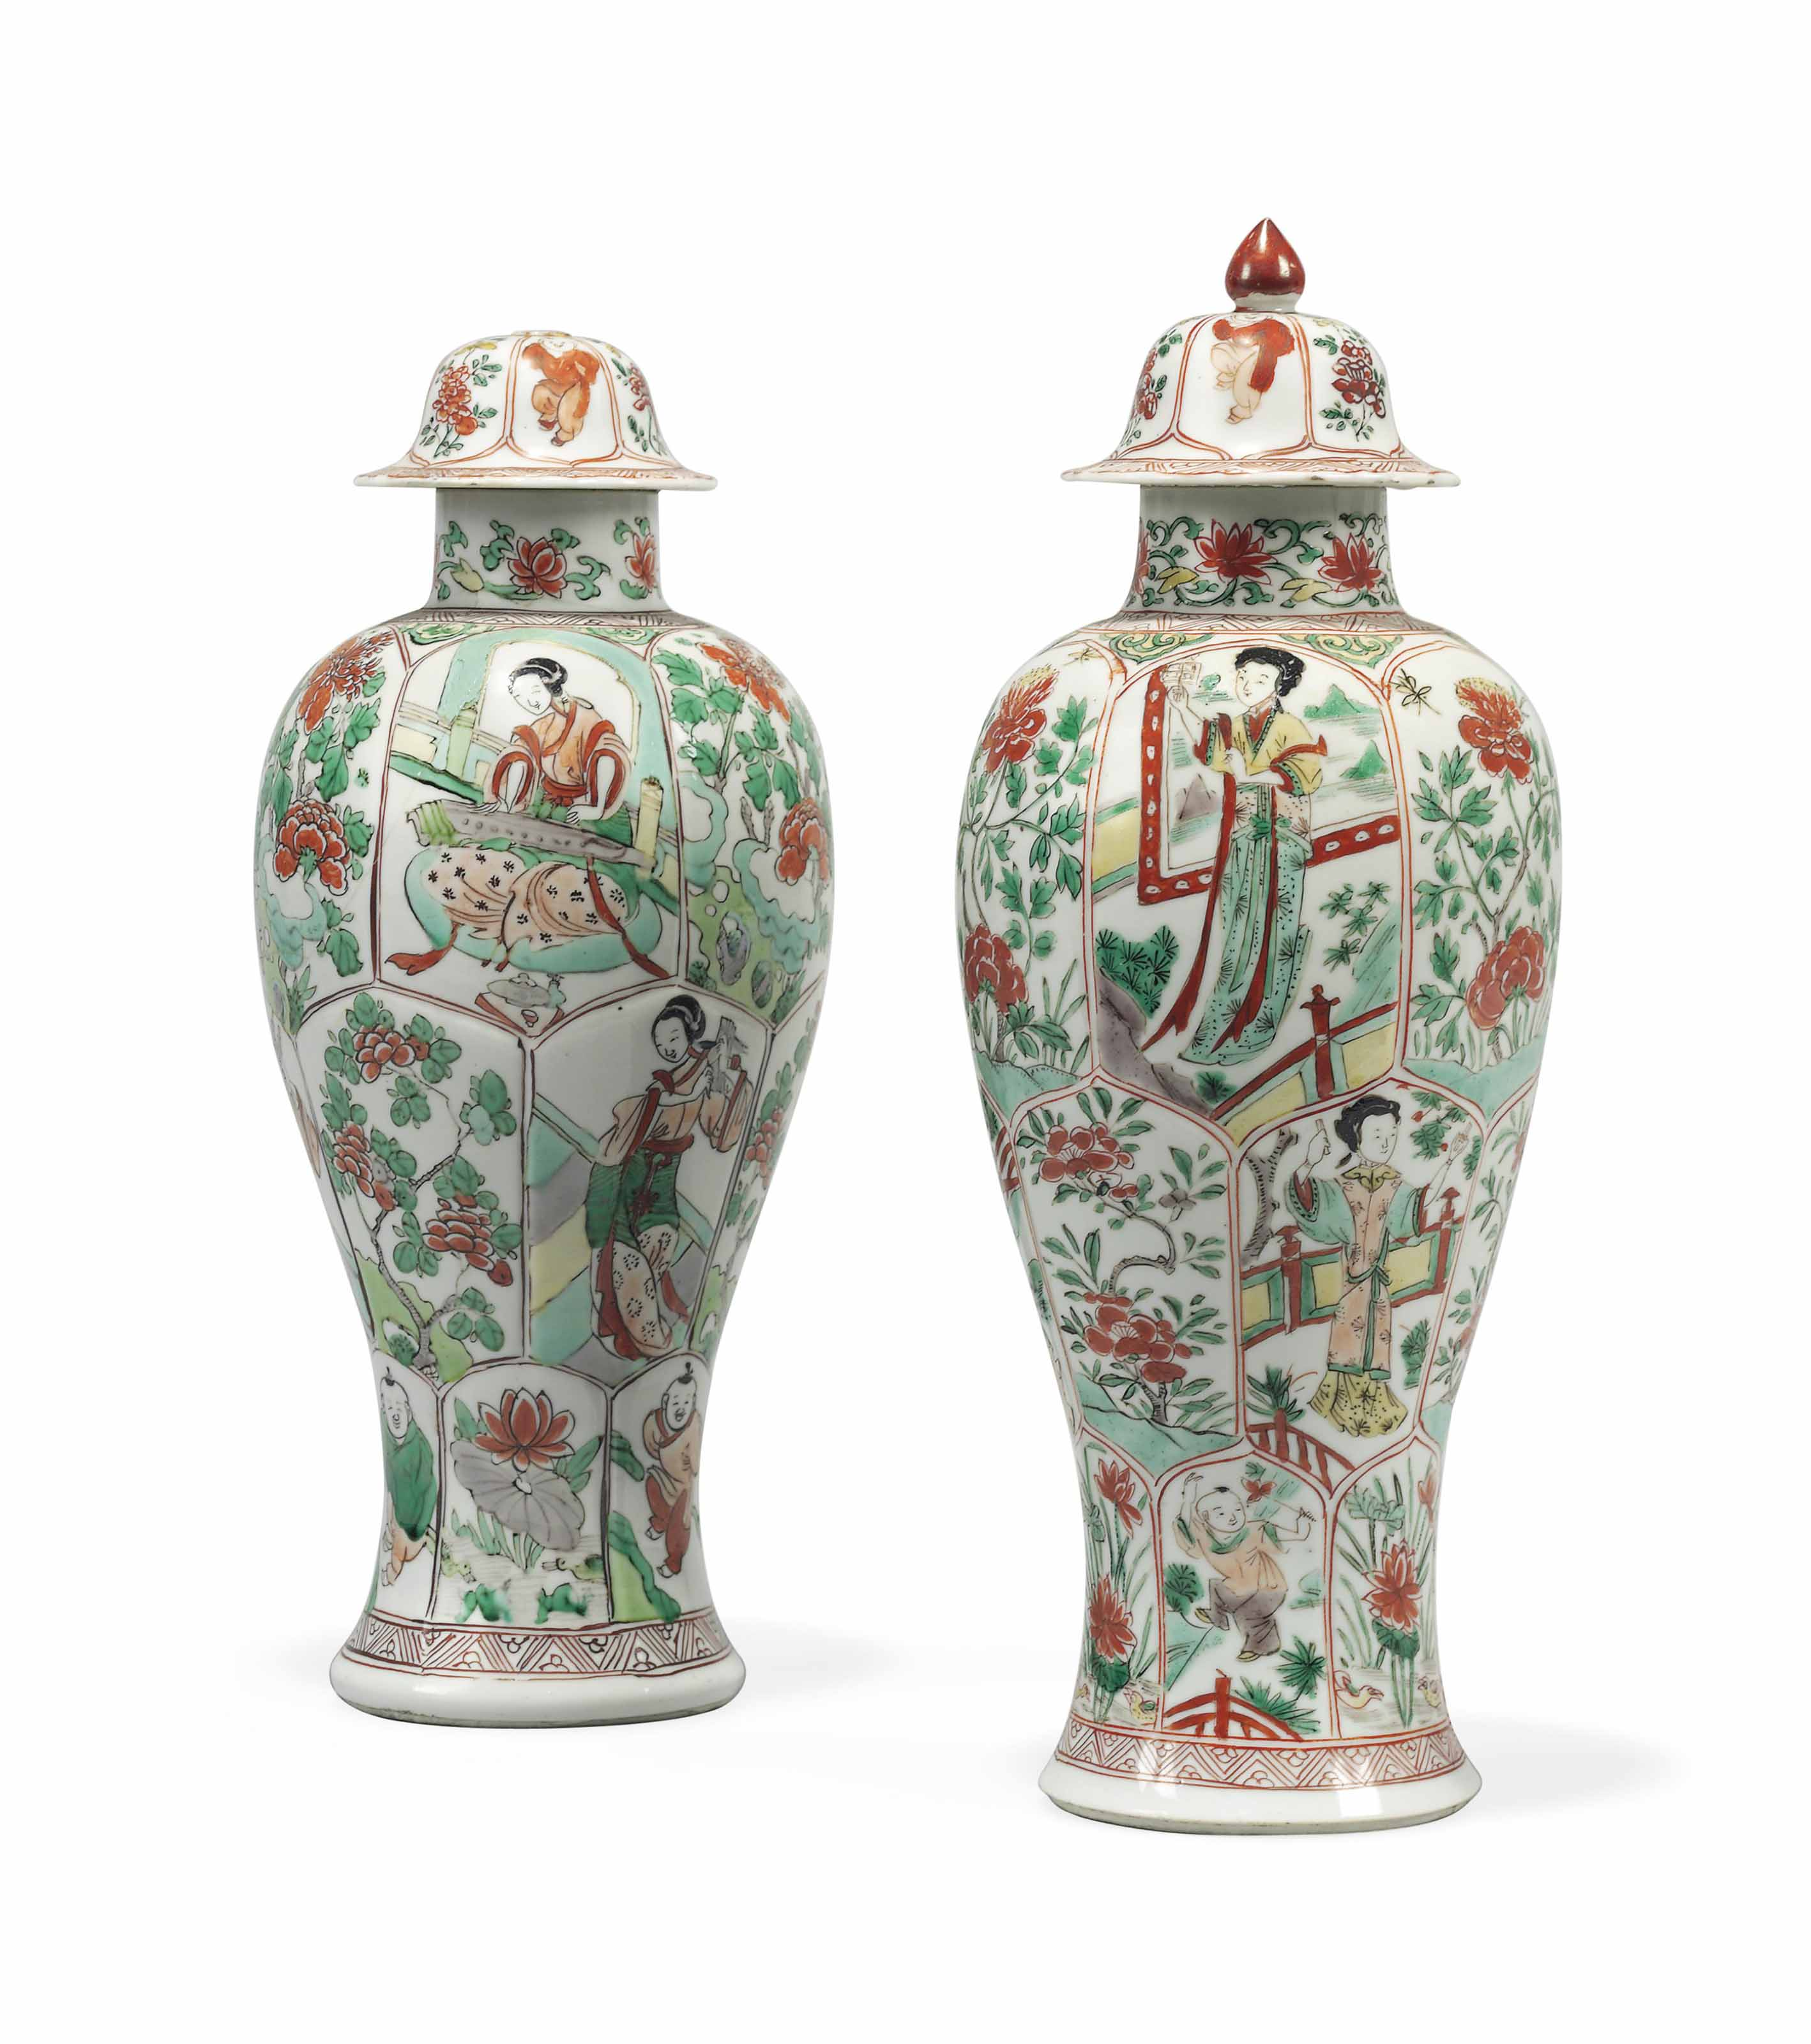 A PAIR OF CHINESE FAMILLE VERTE MOULDED BALUSTER VASES AND COVERS